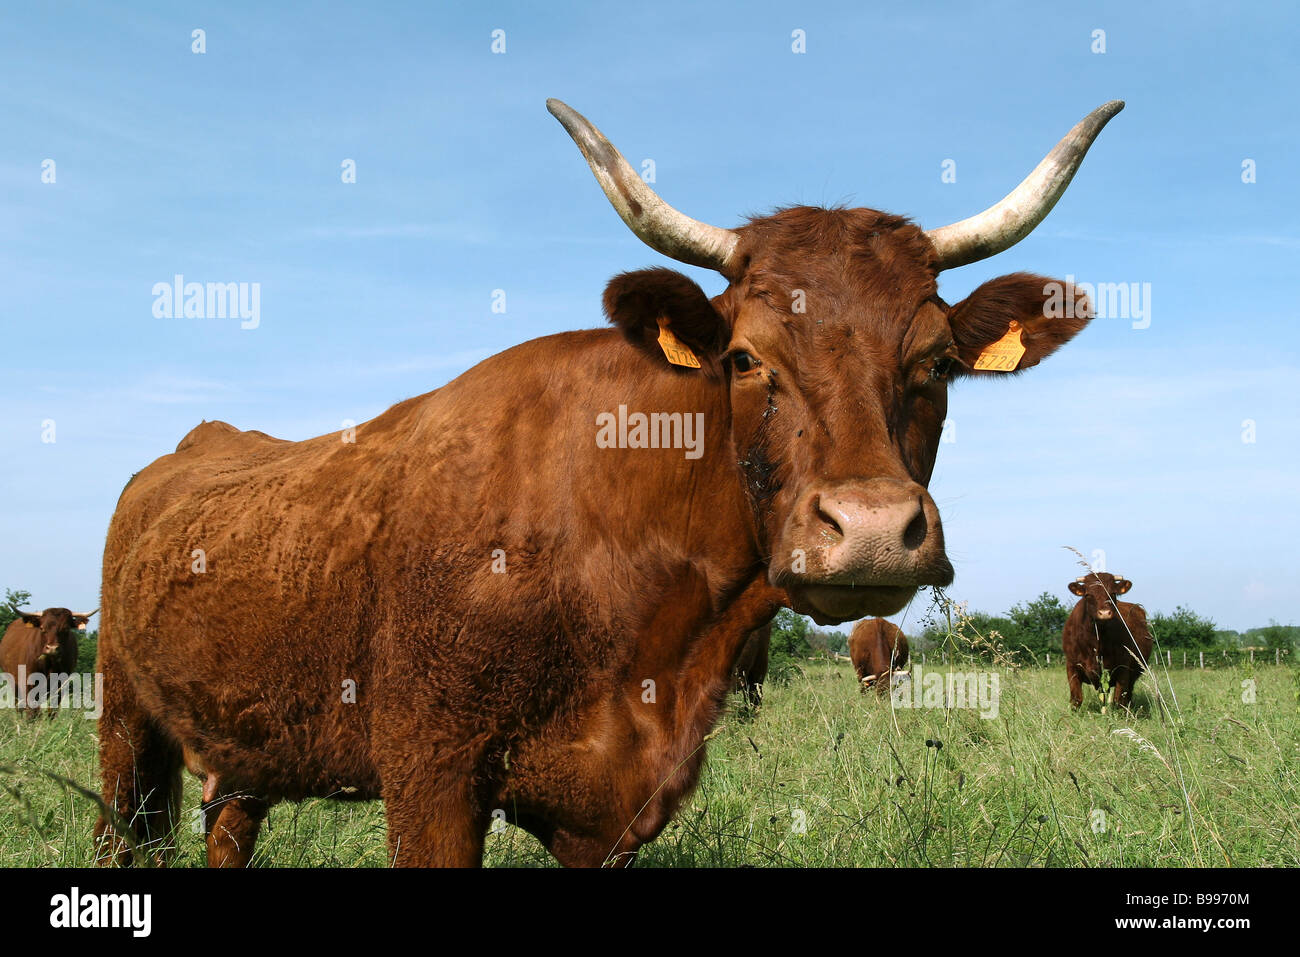 Dairy cow in pasture, portrait - Stock Image